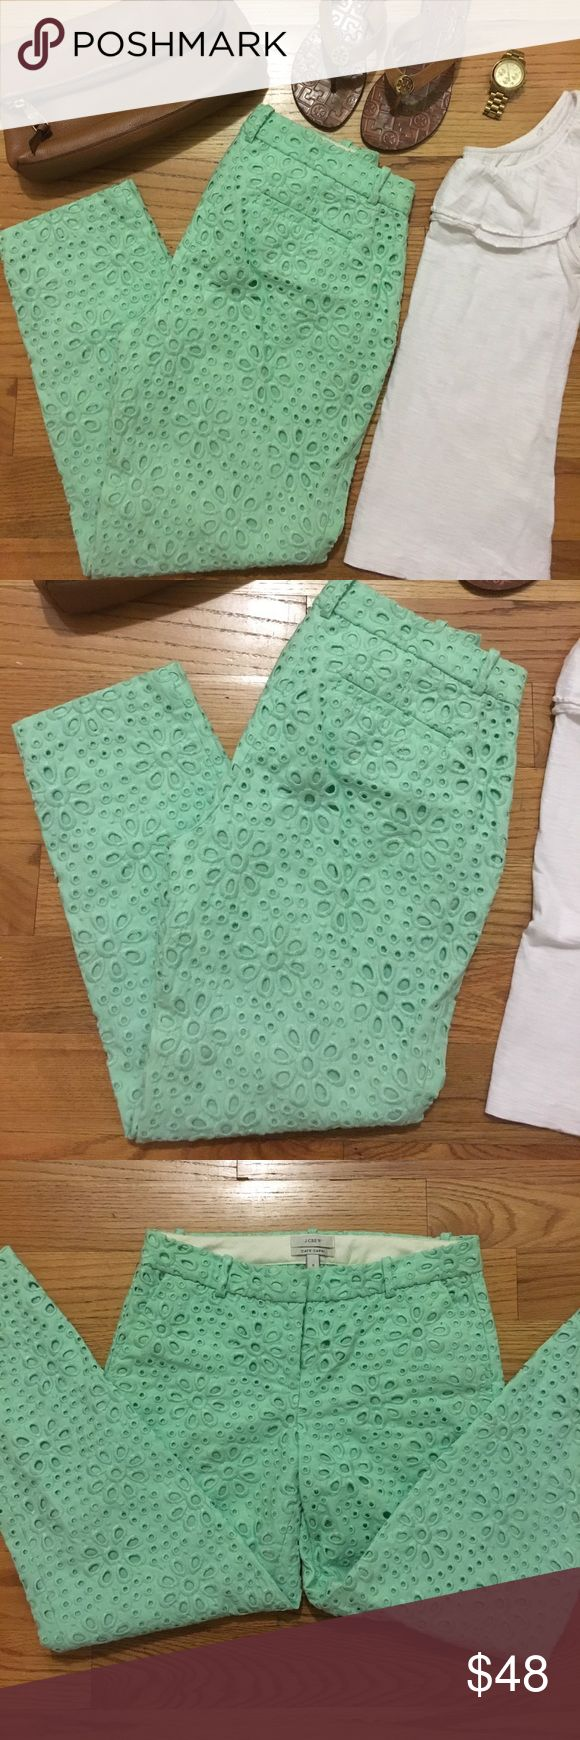 J Crew Cafe Capri Get summer BBQ ready with these adorable J Crew Cafe Capri pants in mint green! Beautiful cut out details make these pants fun, but still comfortable. Size 0. Inseam 25 inches. Only worn once! Pristine condition! Purchased from J Crew retail store, NOT an outlet. Hate to sell, but I need to downsize my closet. Much love, poshers! 😘 J. Crew Pants Ankle & Cropped